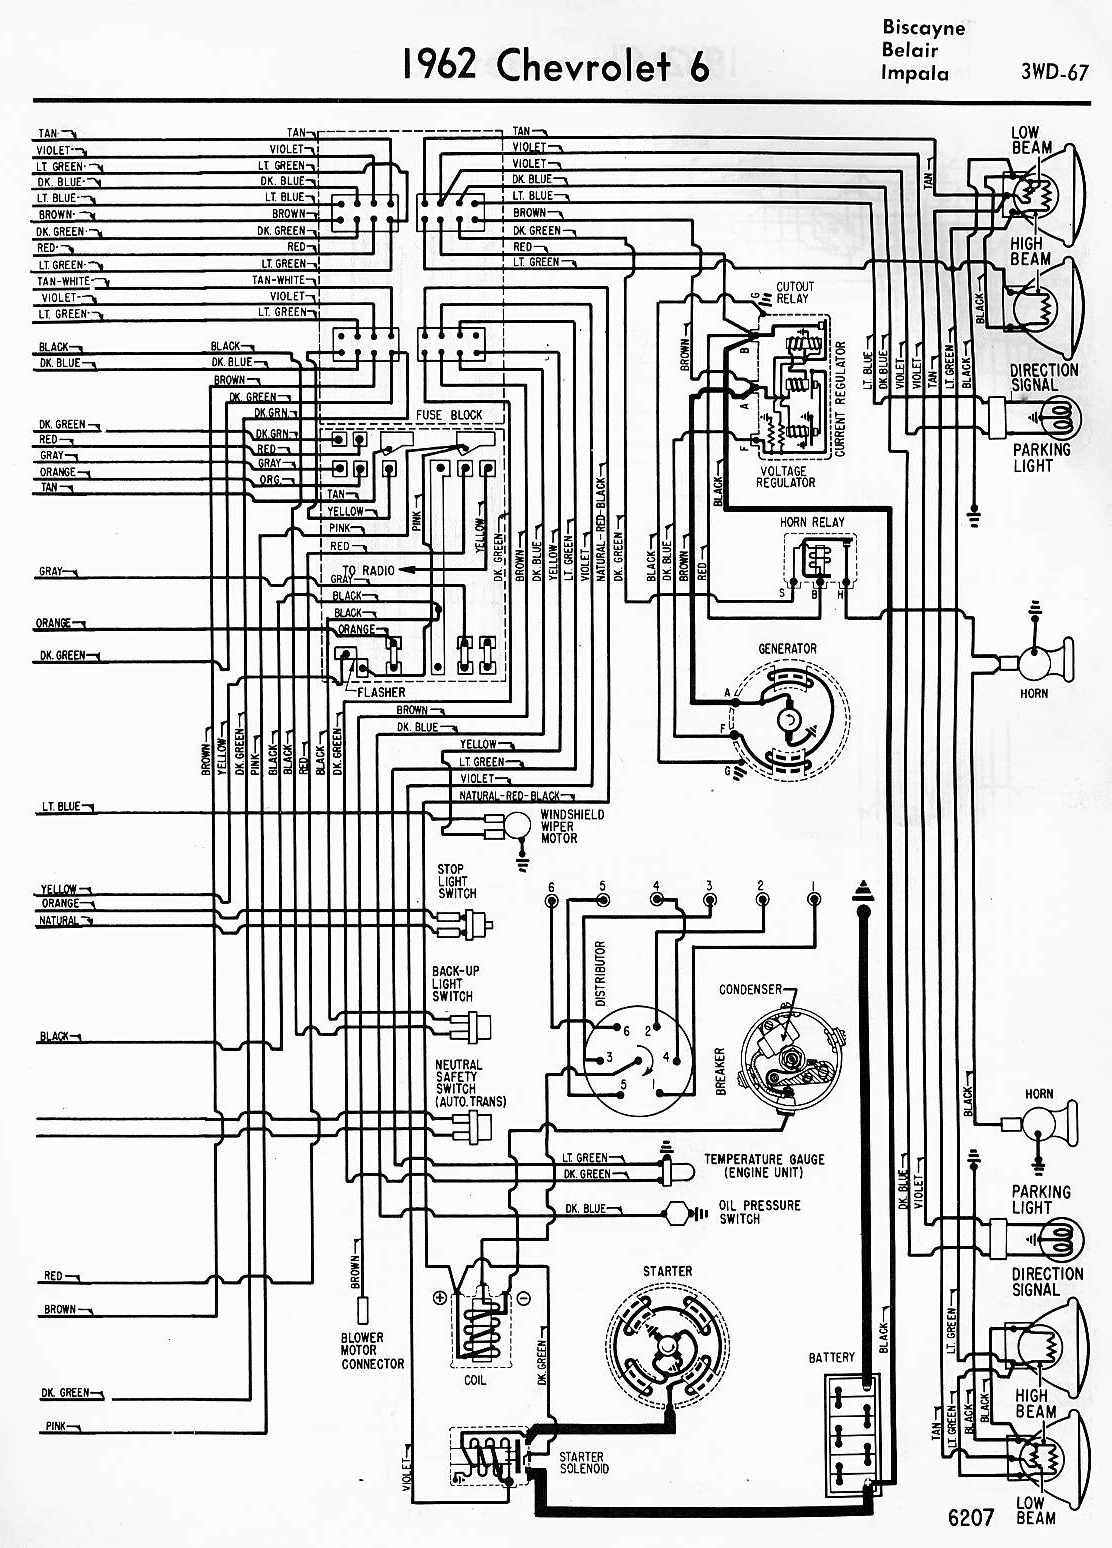 hight resolution of 1963 impala headlight switch diagram www topsimages com 2004 chevy impala parts diagram inside diagram 1963